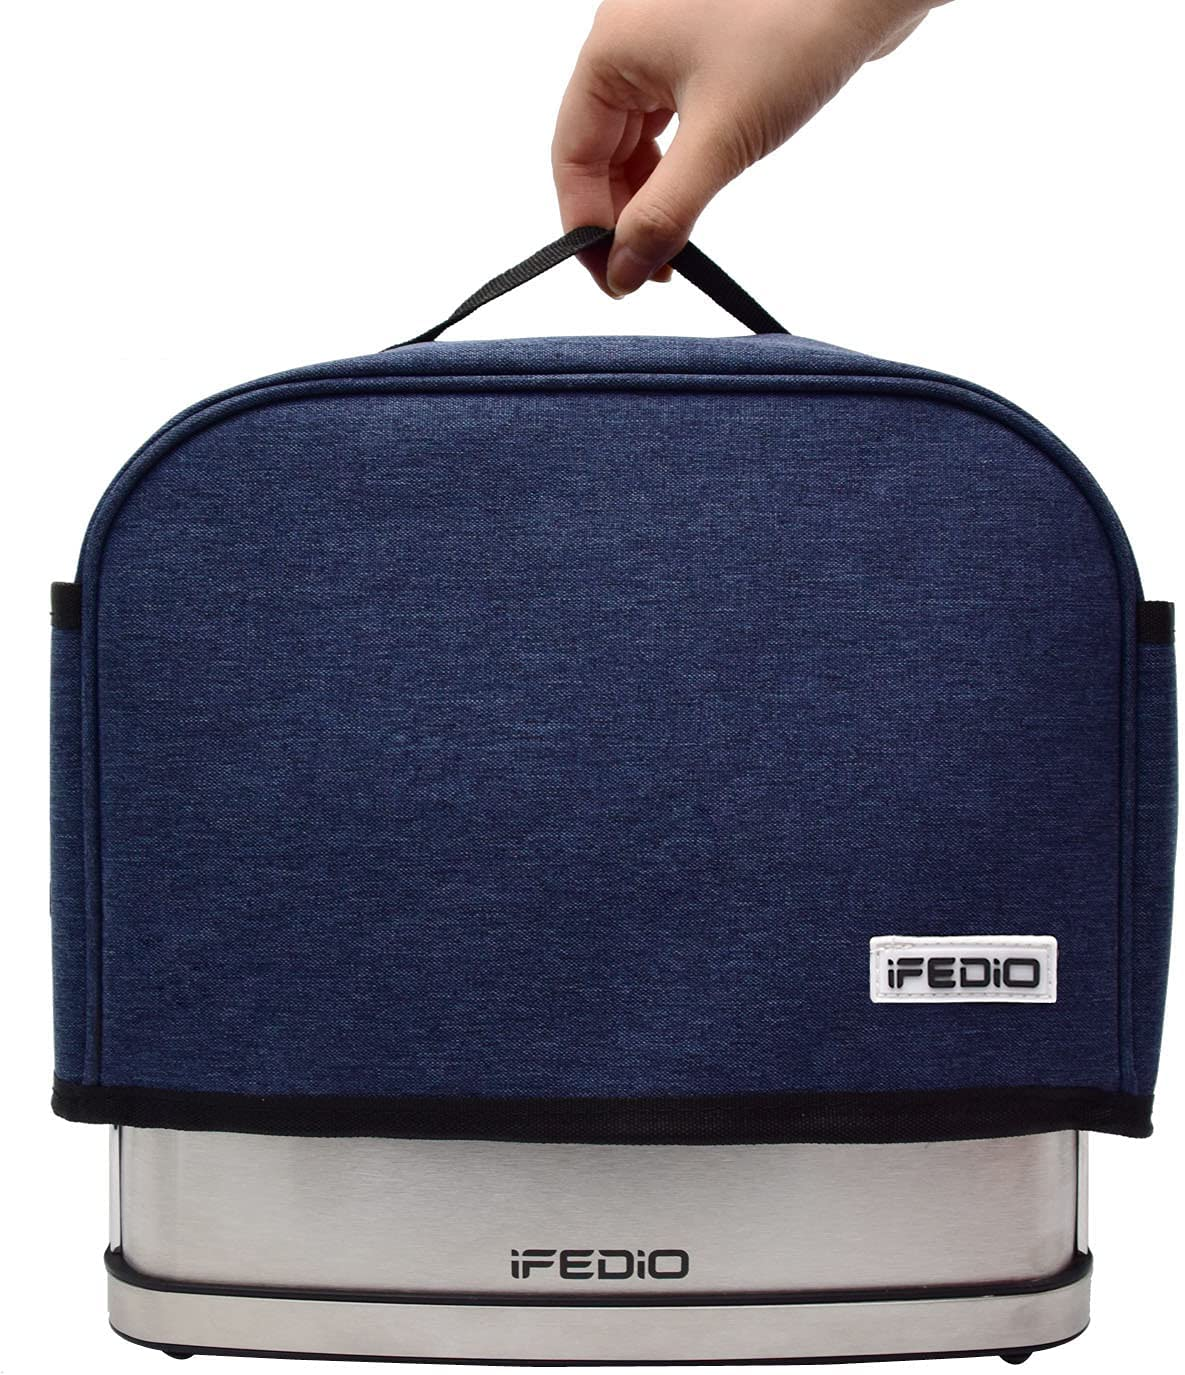 Toaster Cover 2 Slice with 2 Pockets, Avoiding Dust and Pests, Green Materials, Blue, 11